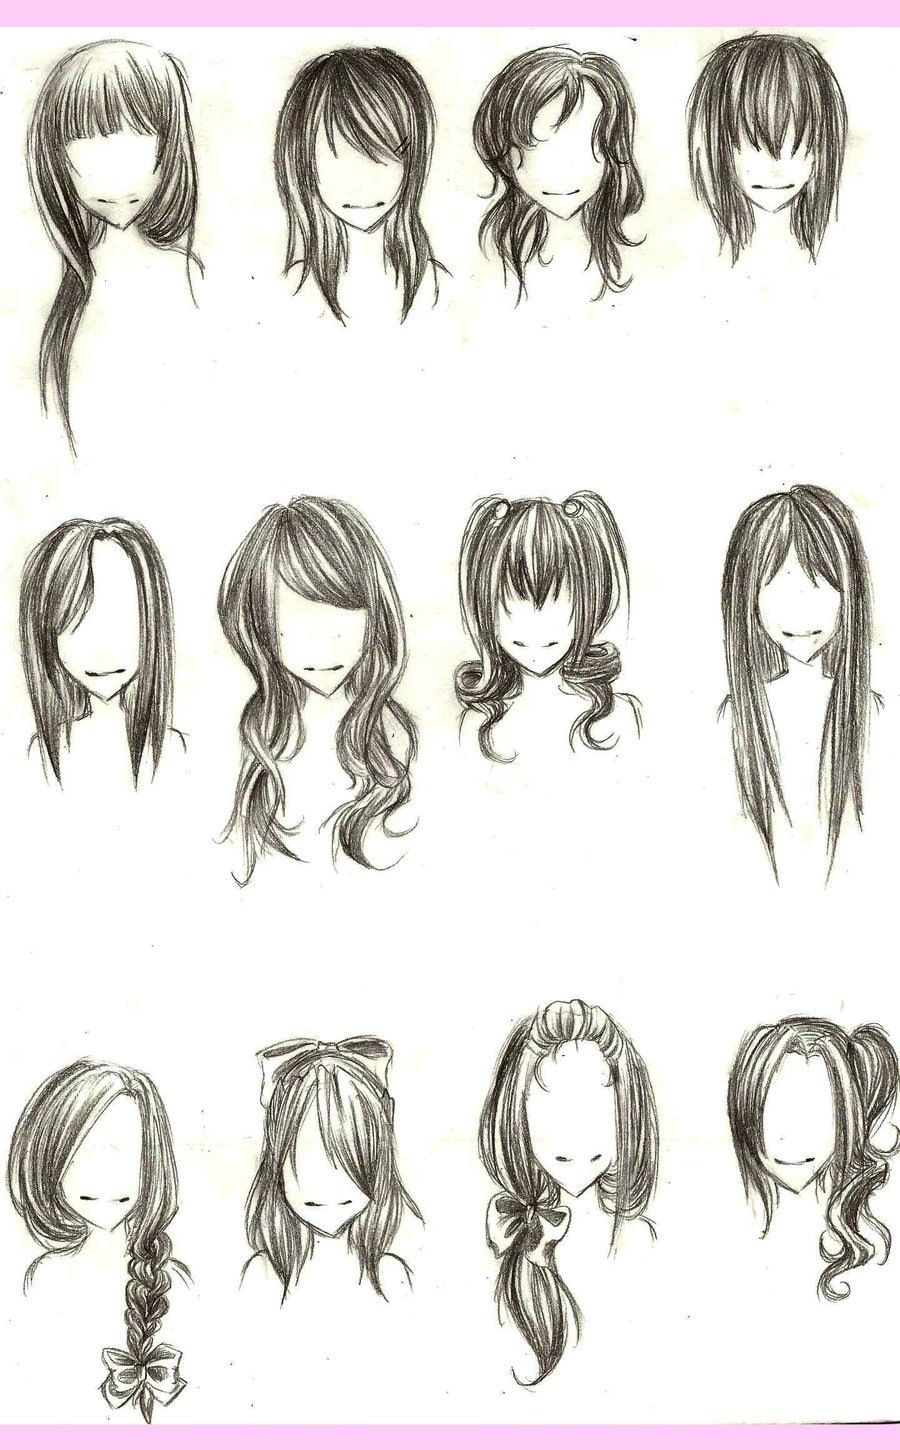 ✷for referents when drawing some different hair styles | art